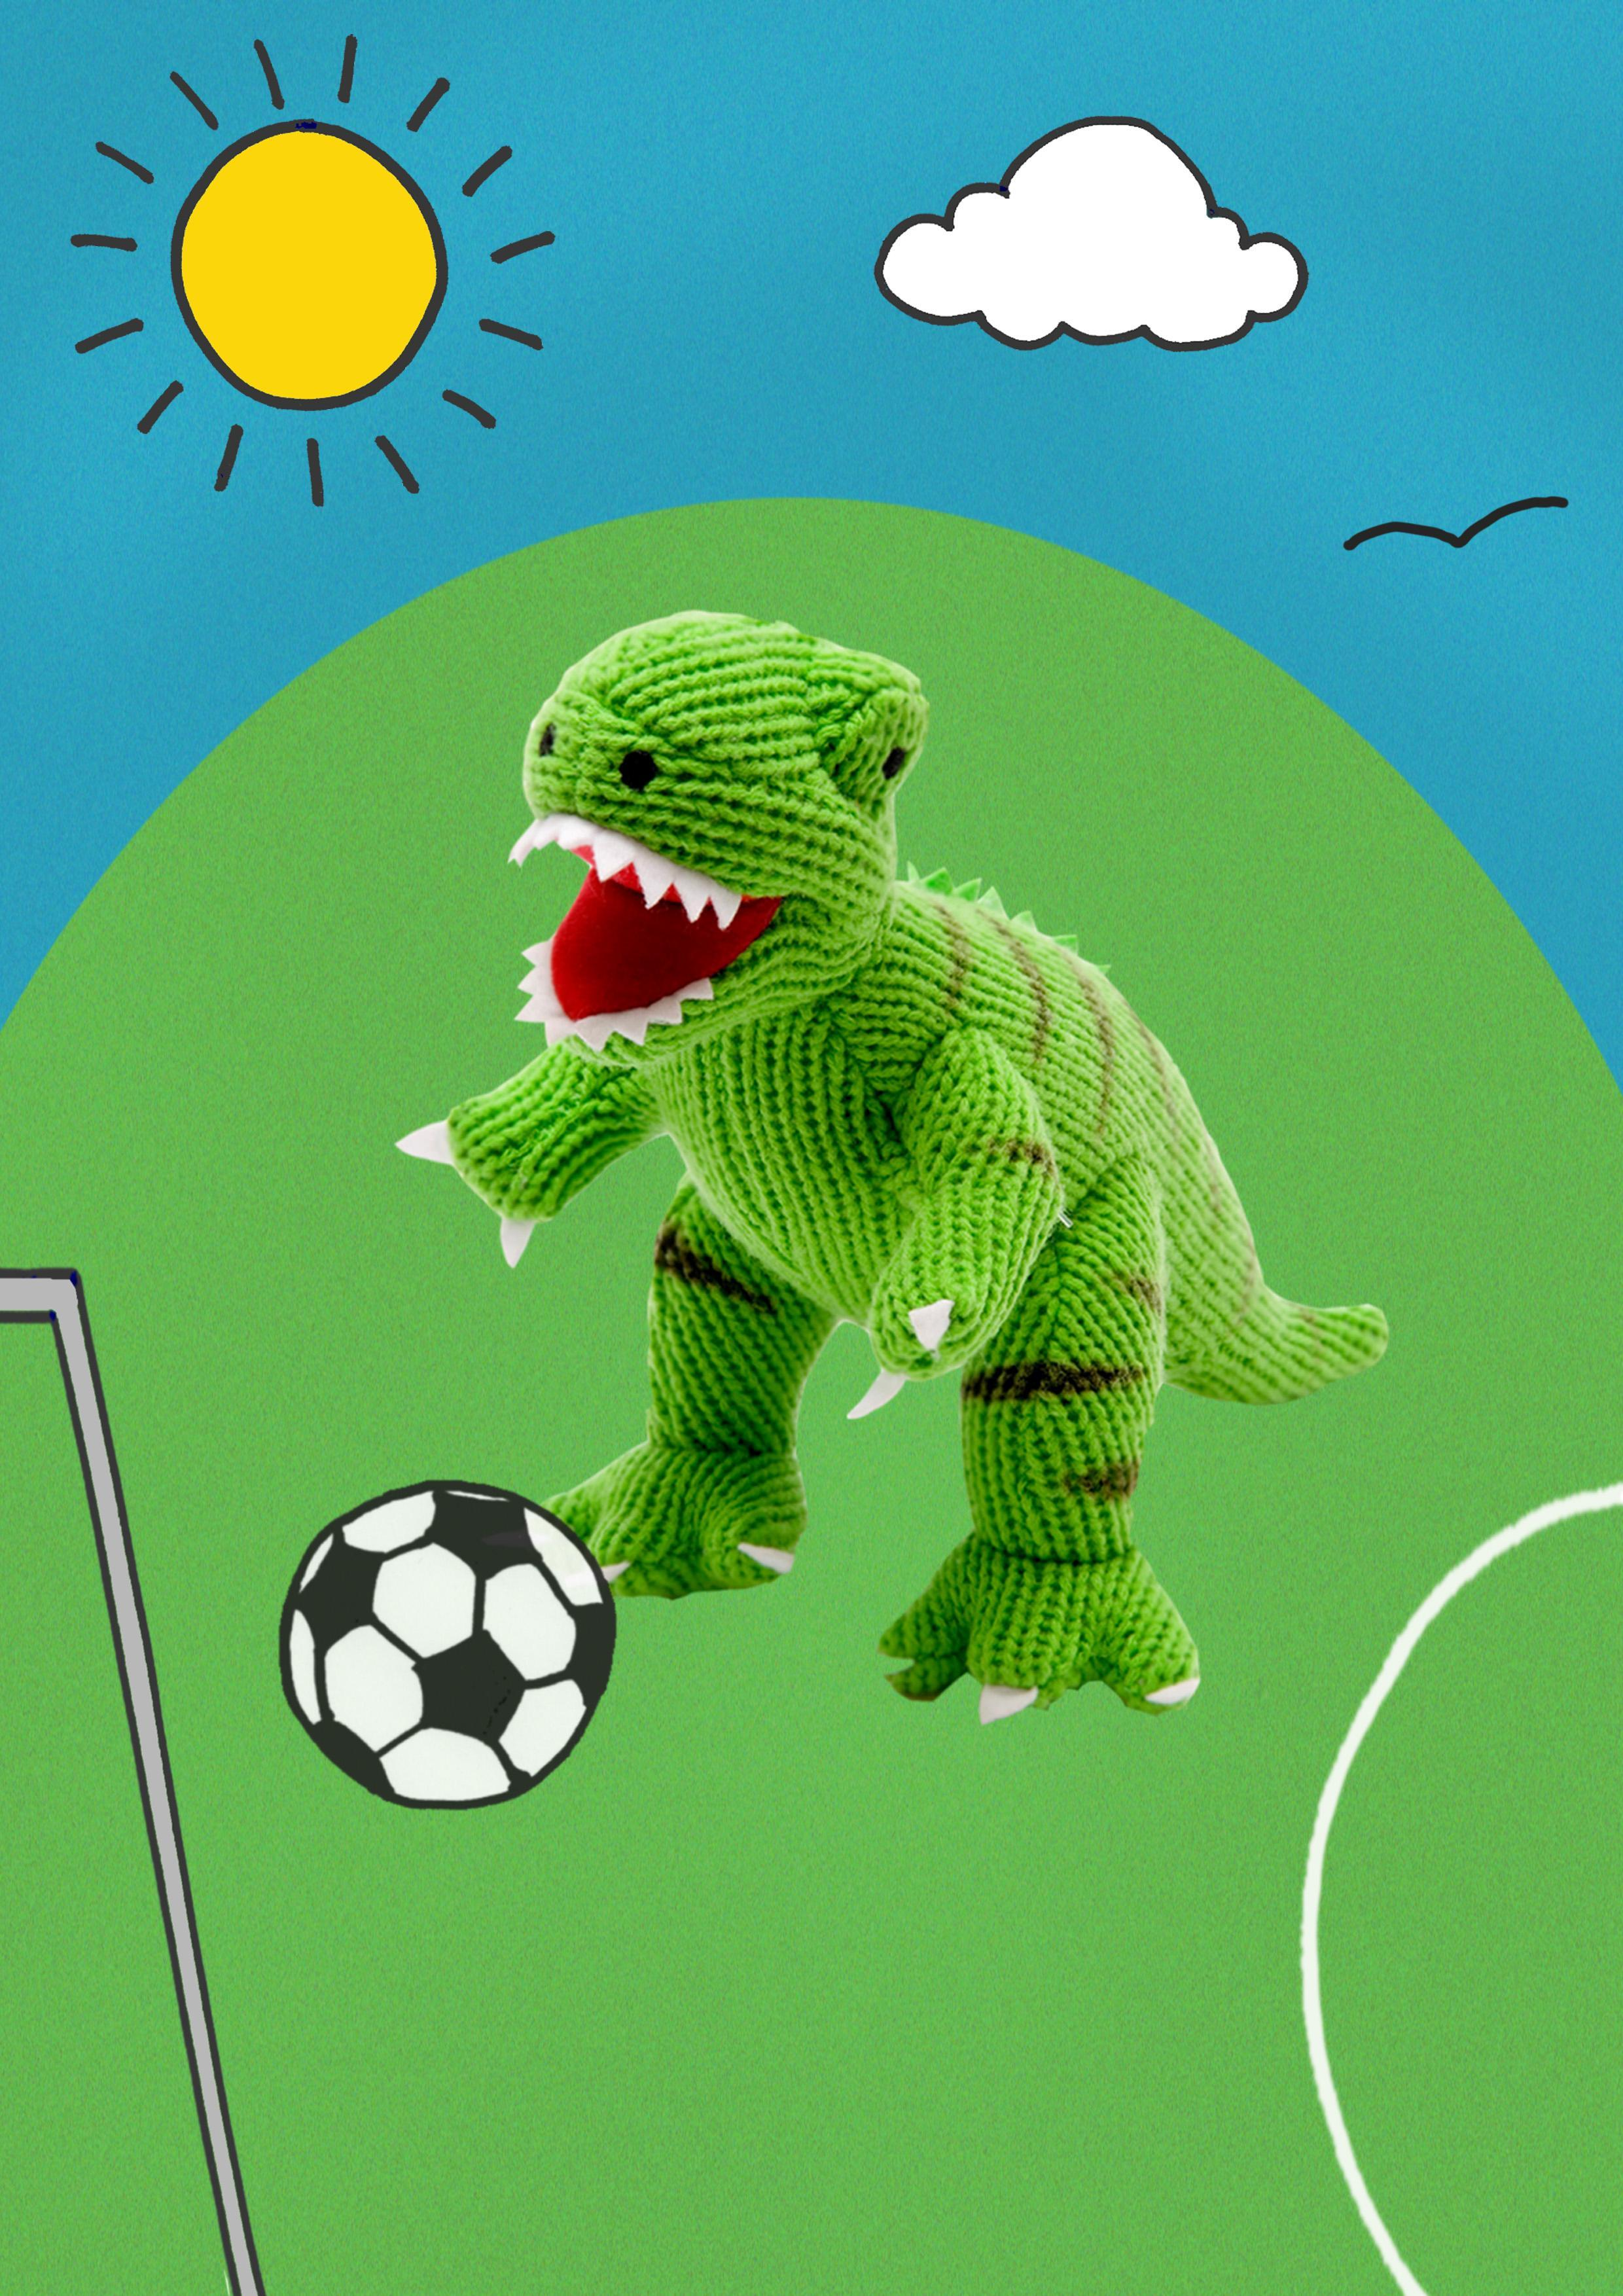 T Rex with football